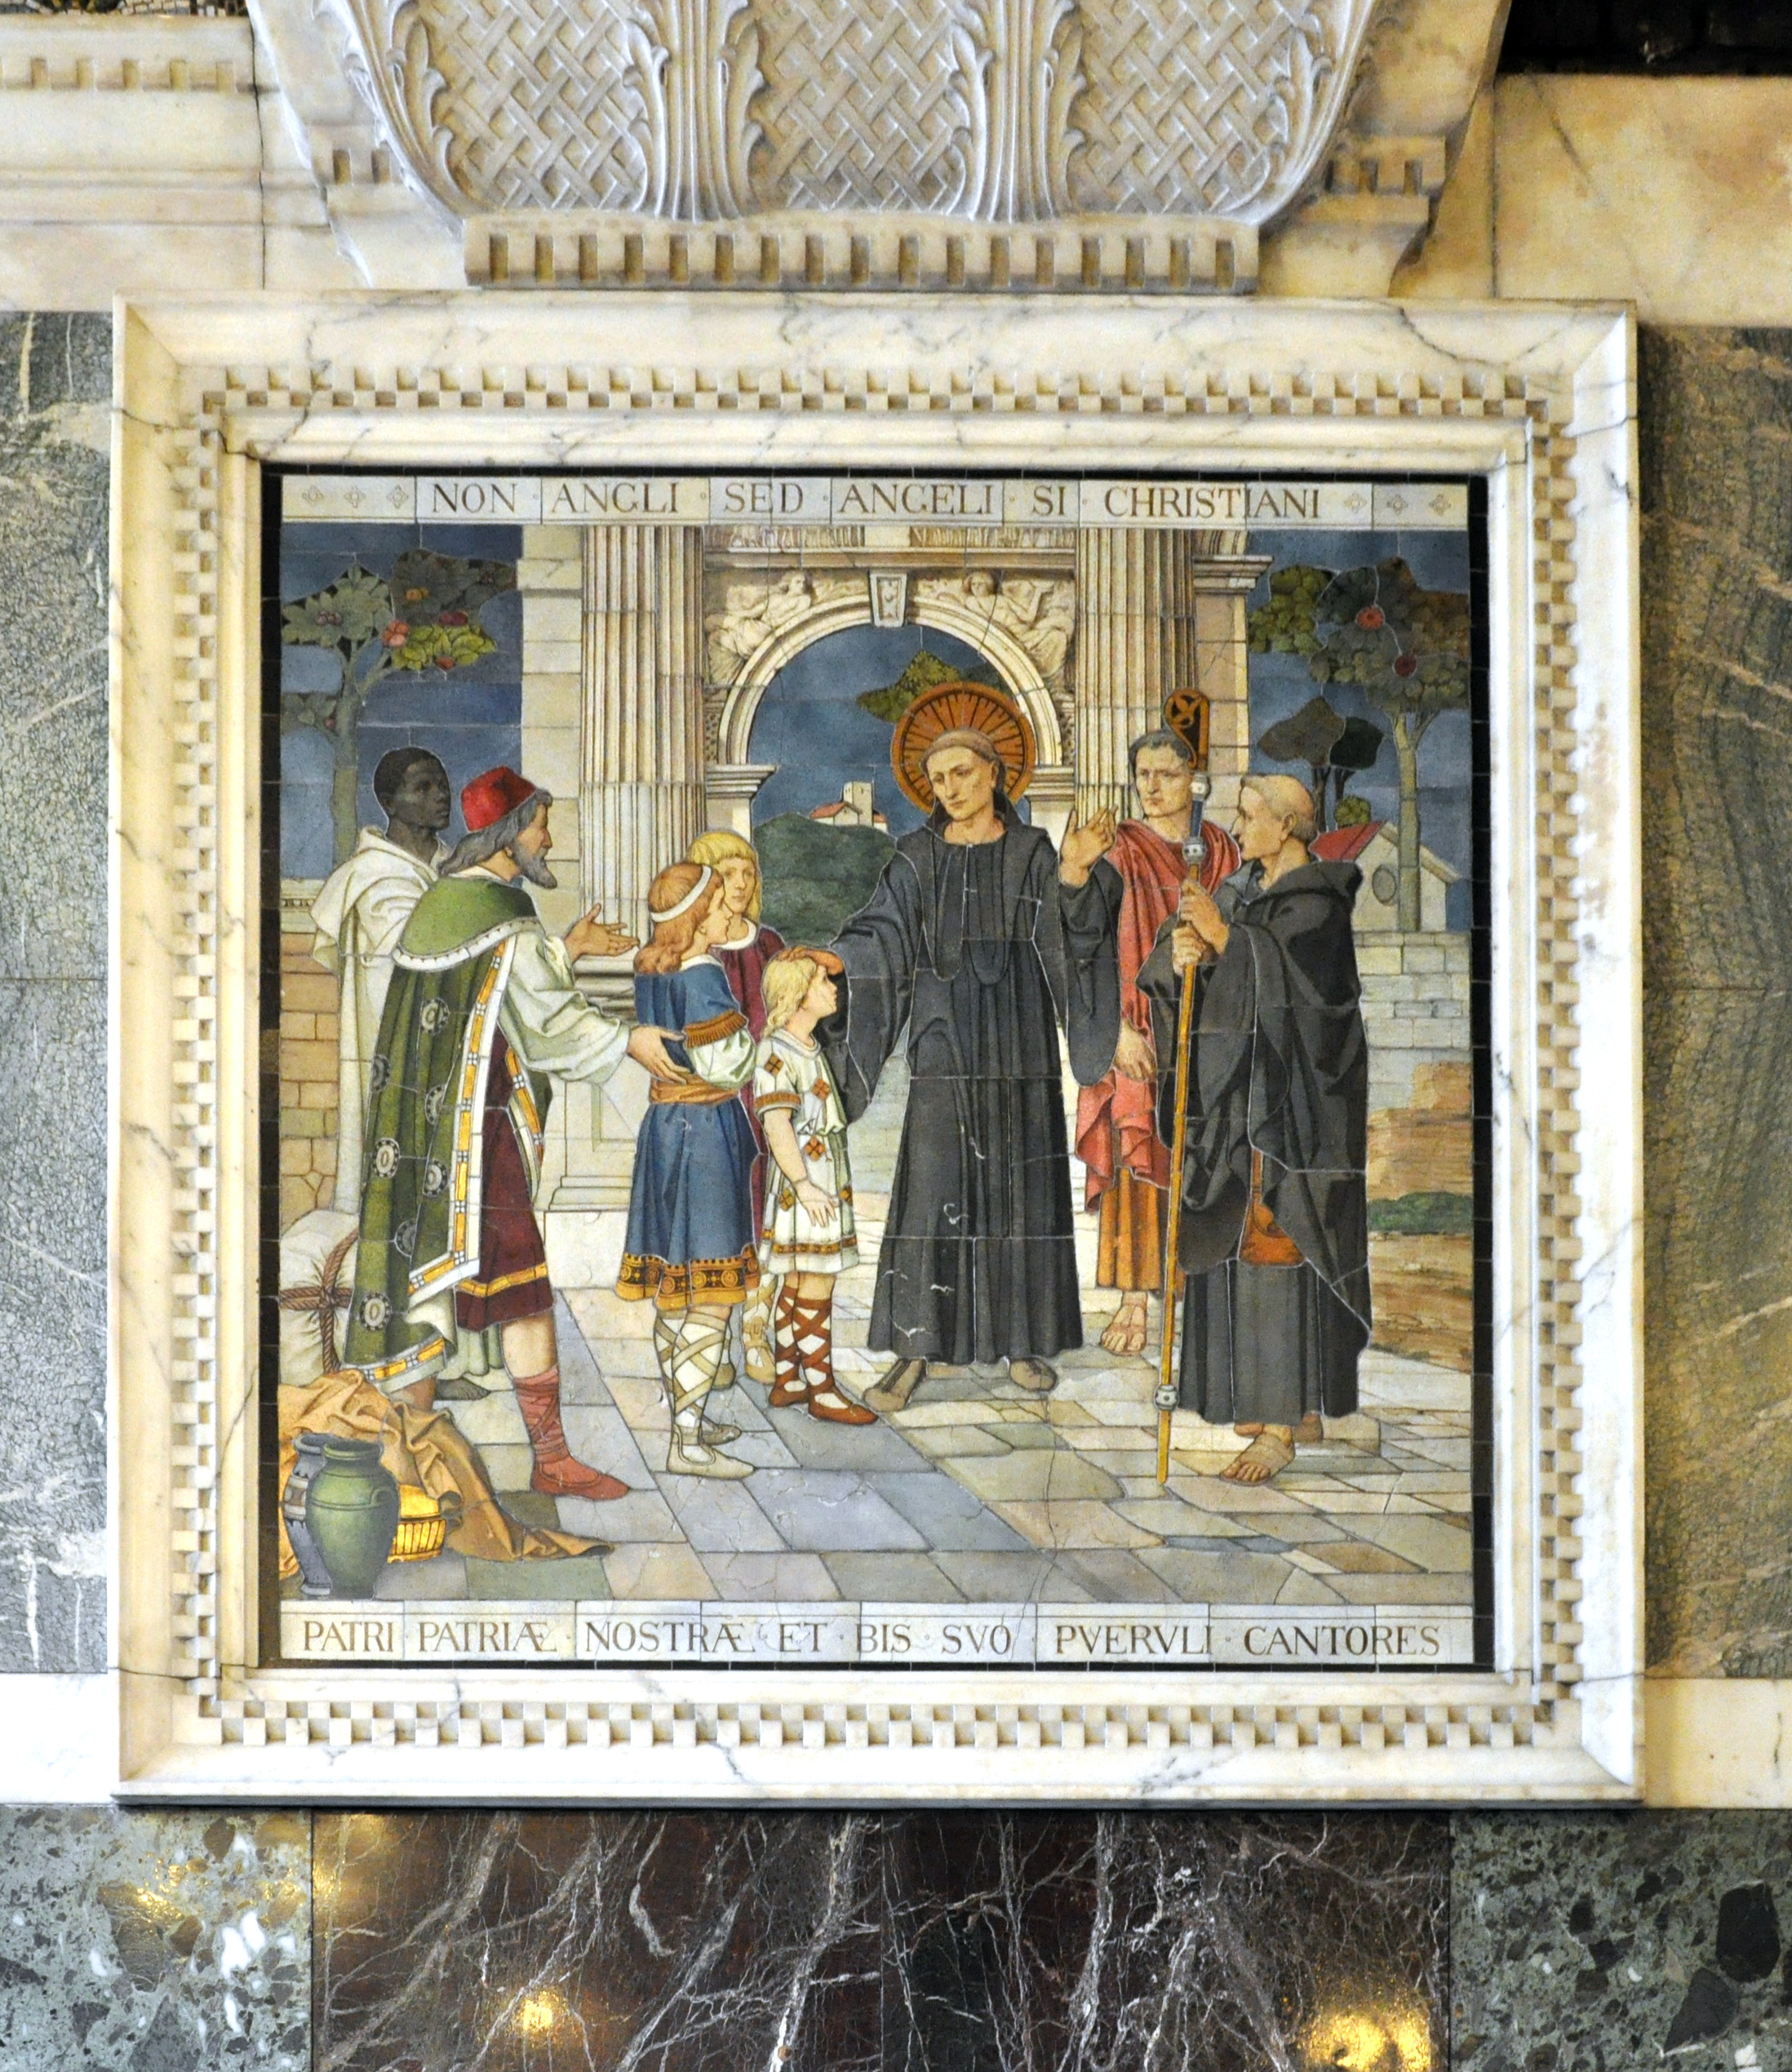 Westminster_Cathedral_Non_Angli_sed_Angeli_si_Christiani